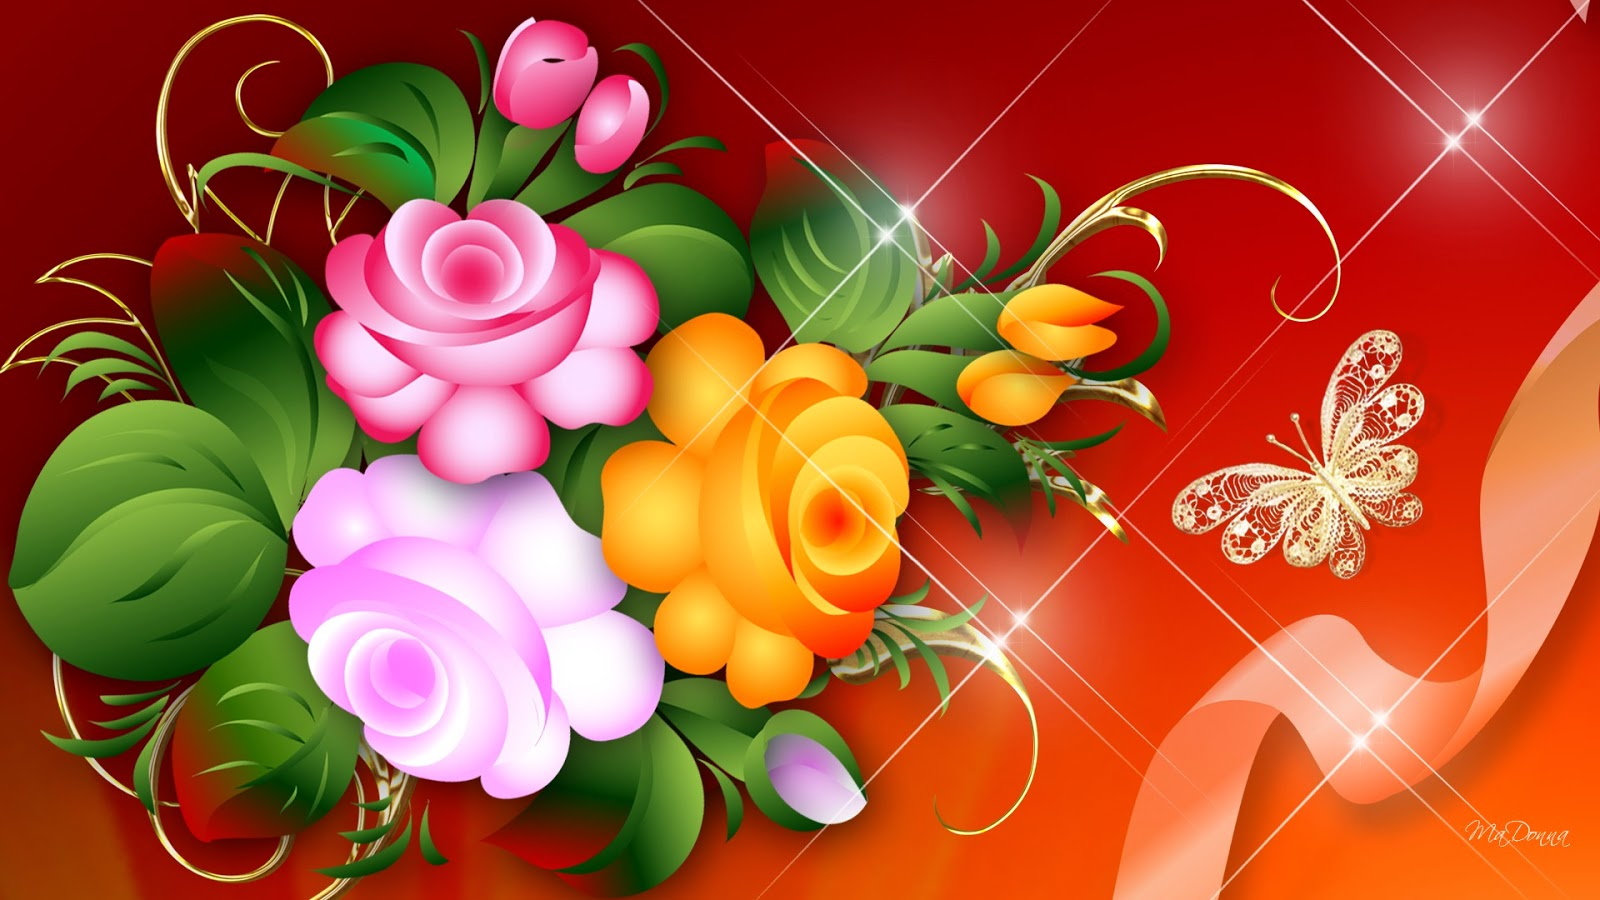 Bright flower wallpaper   beautiful desktop wallpapers 2014 1600x900